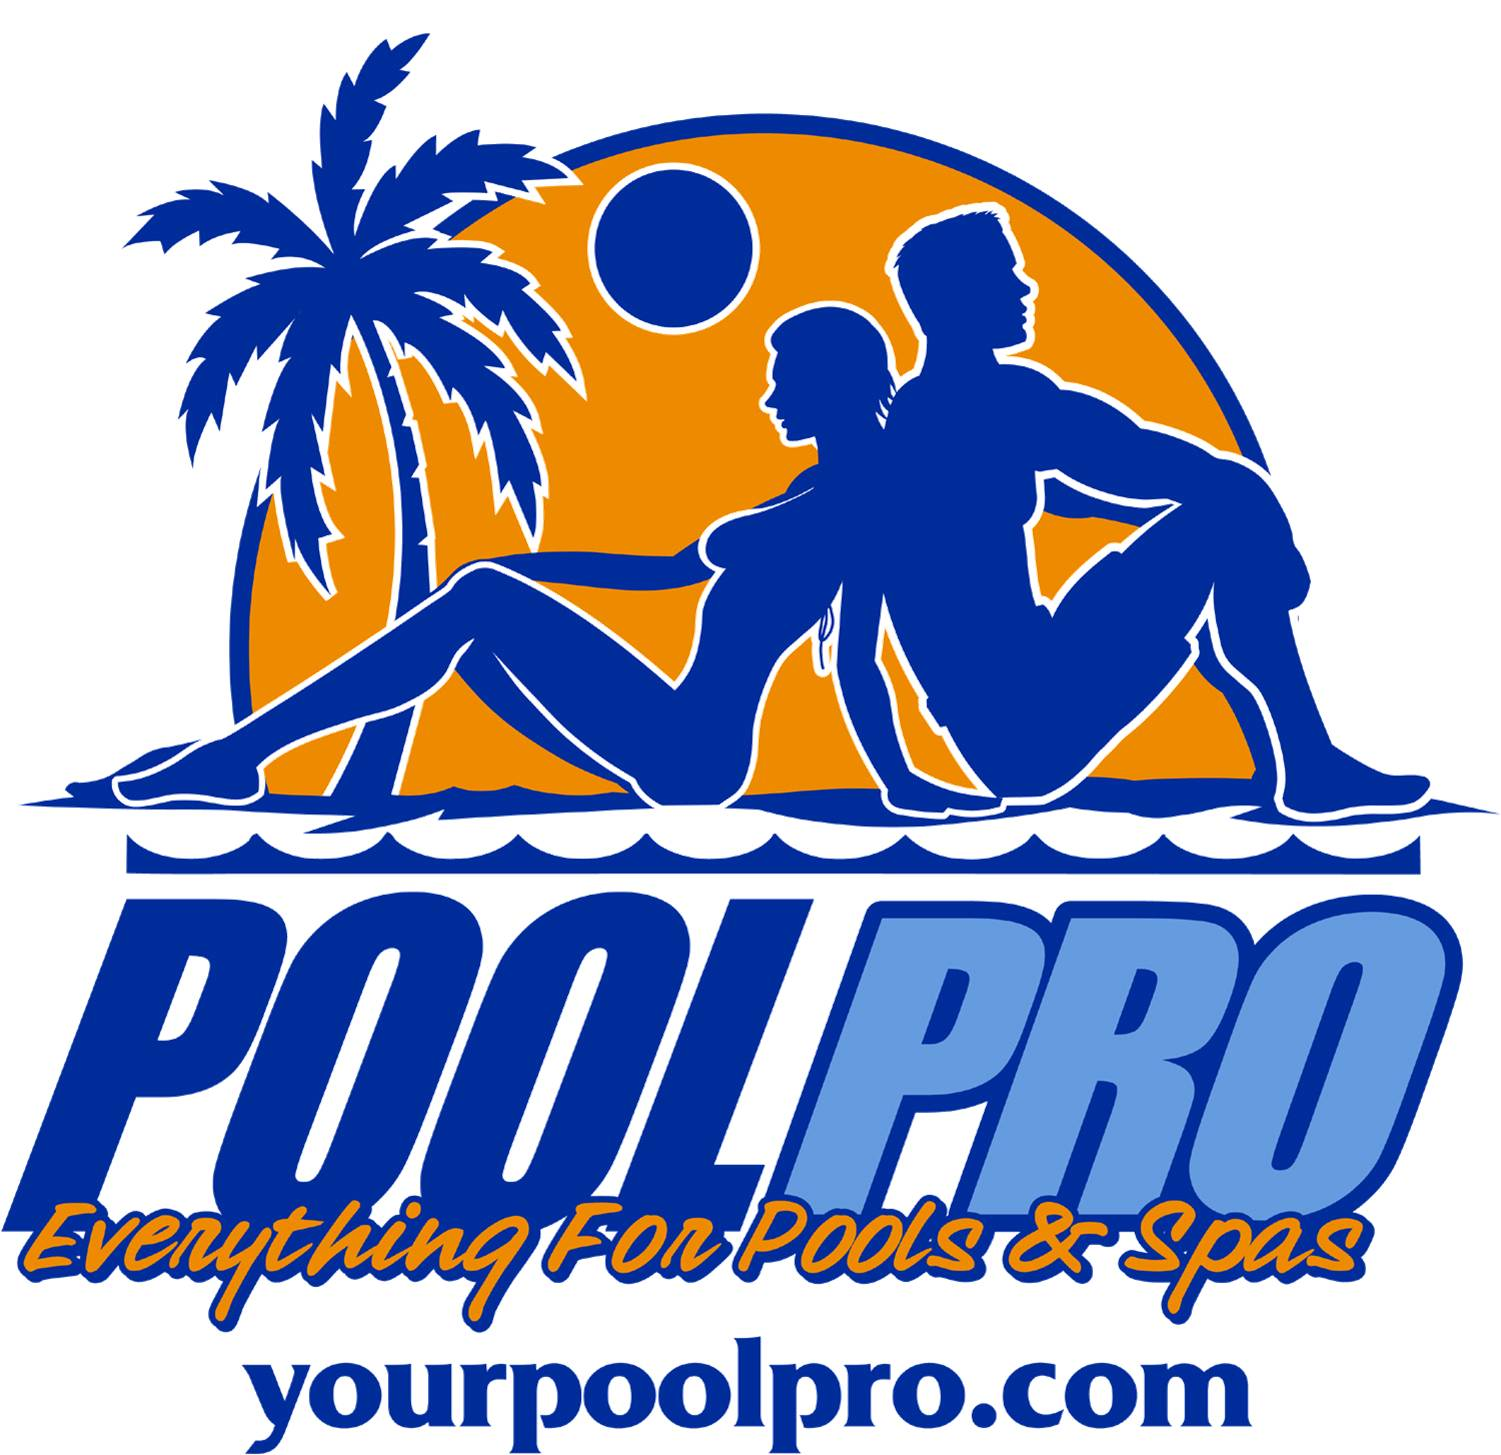 PoolPro